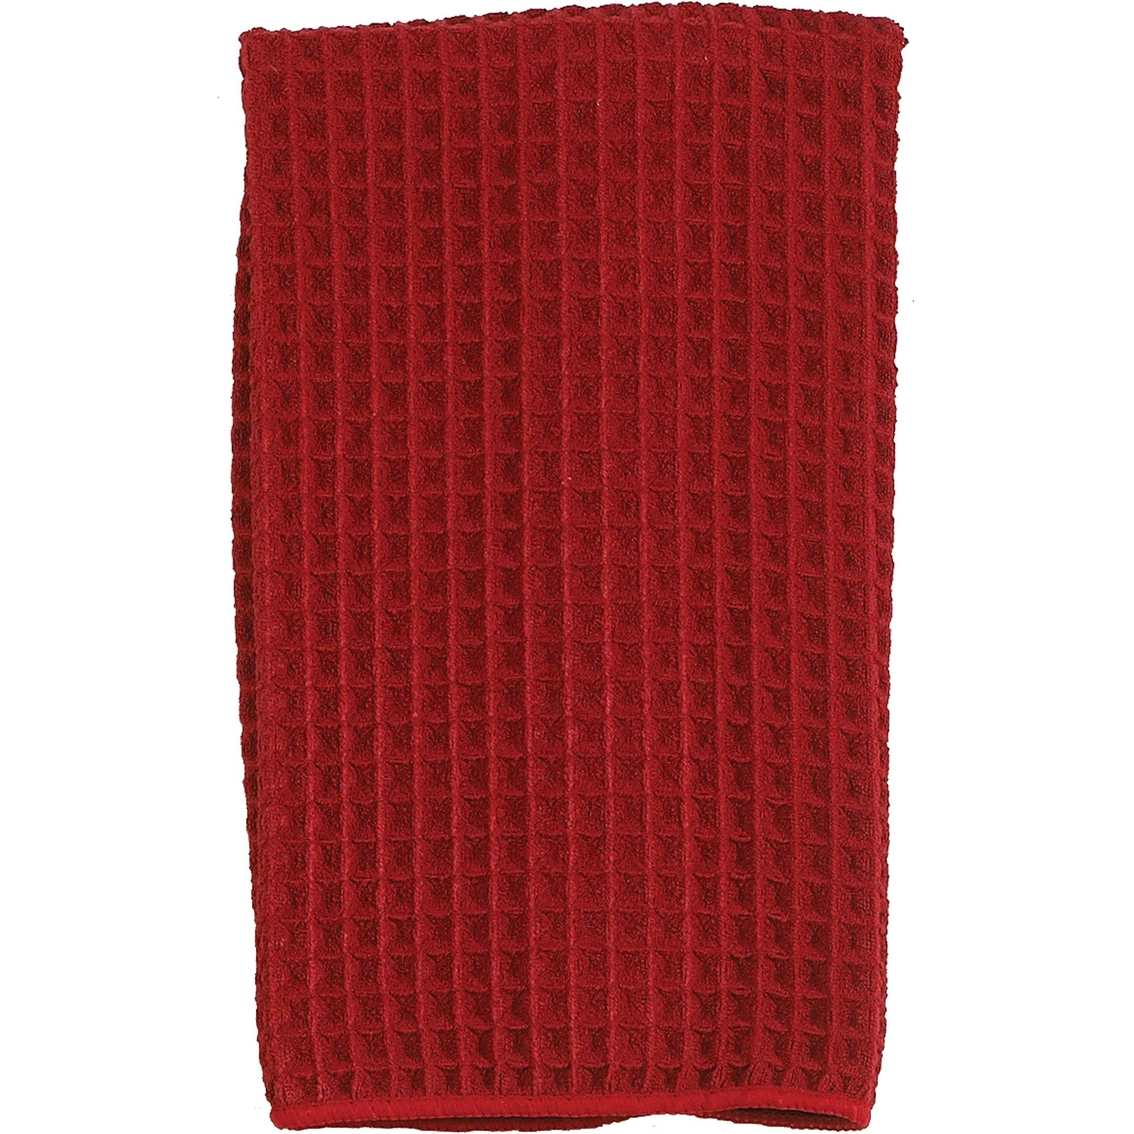 Kay dee designs cafe express microfiber waffle towel Kay dee designs kitchen towels